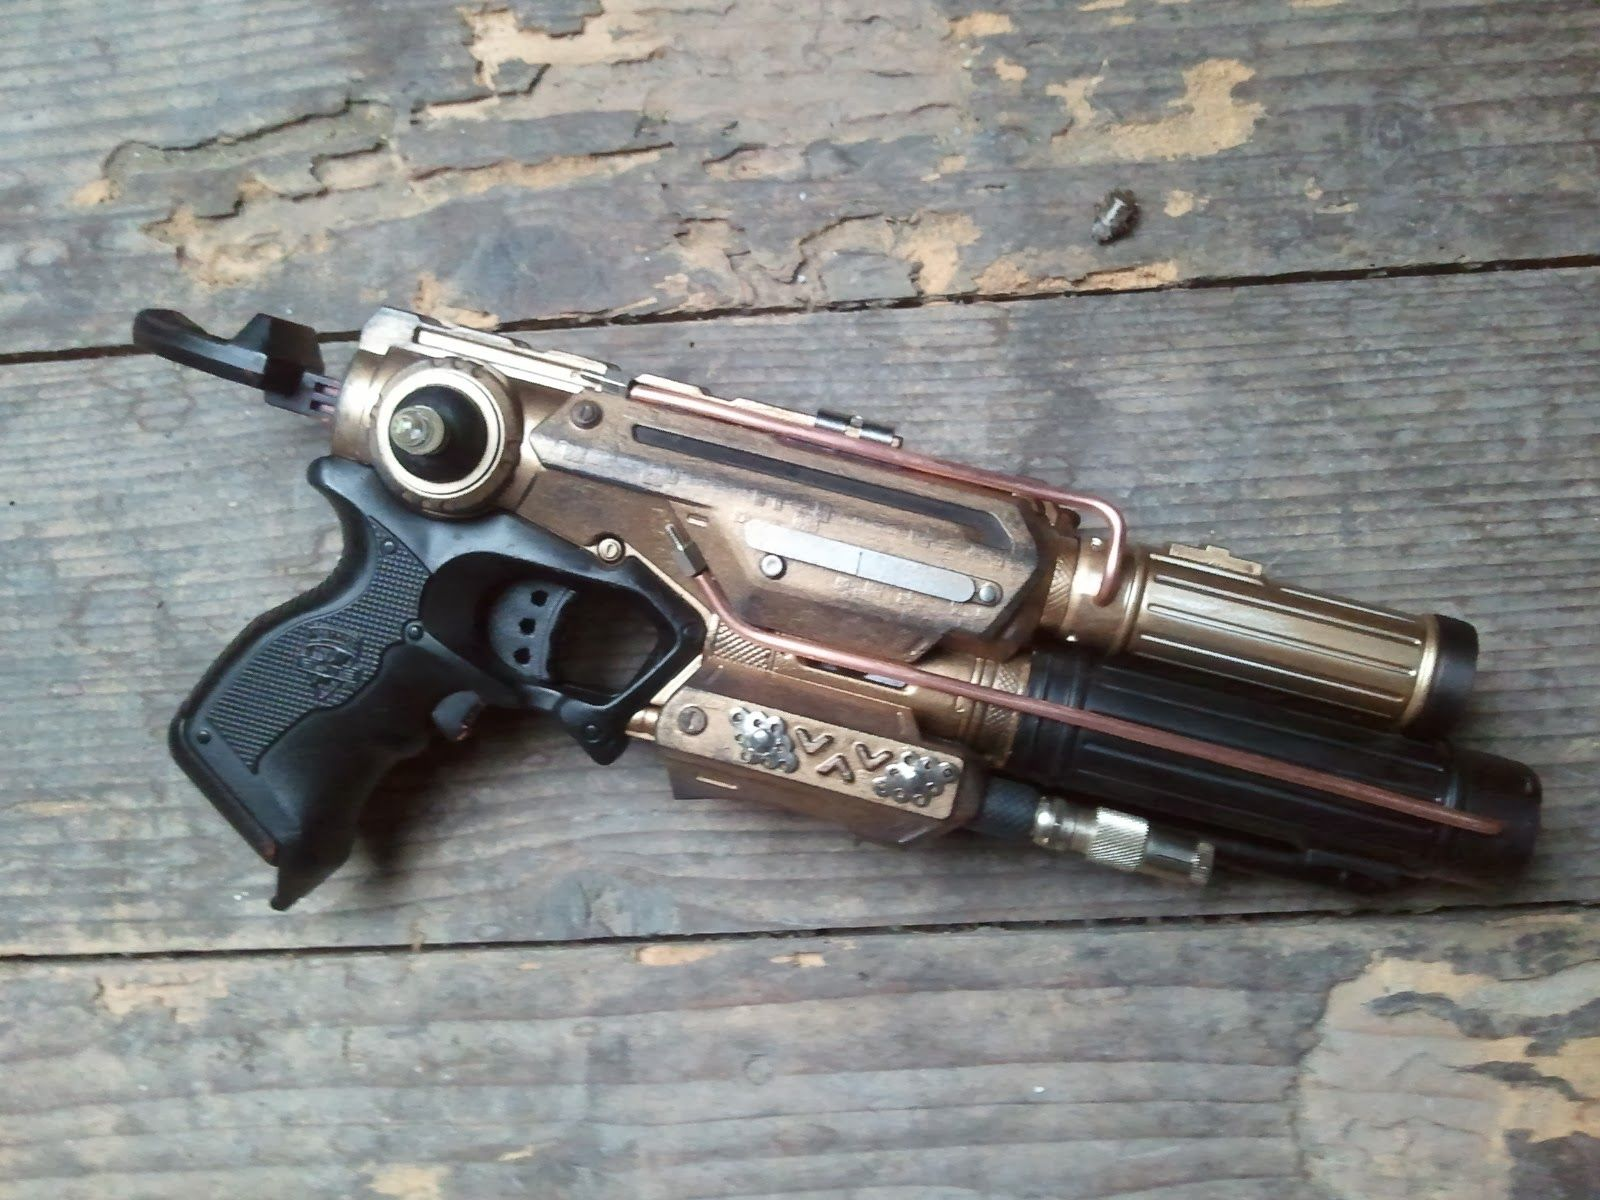 Awesome steampunk nerf gun mod, with the bodies of flashlights used to  extend the length